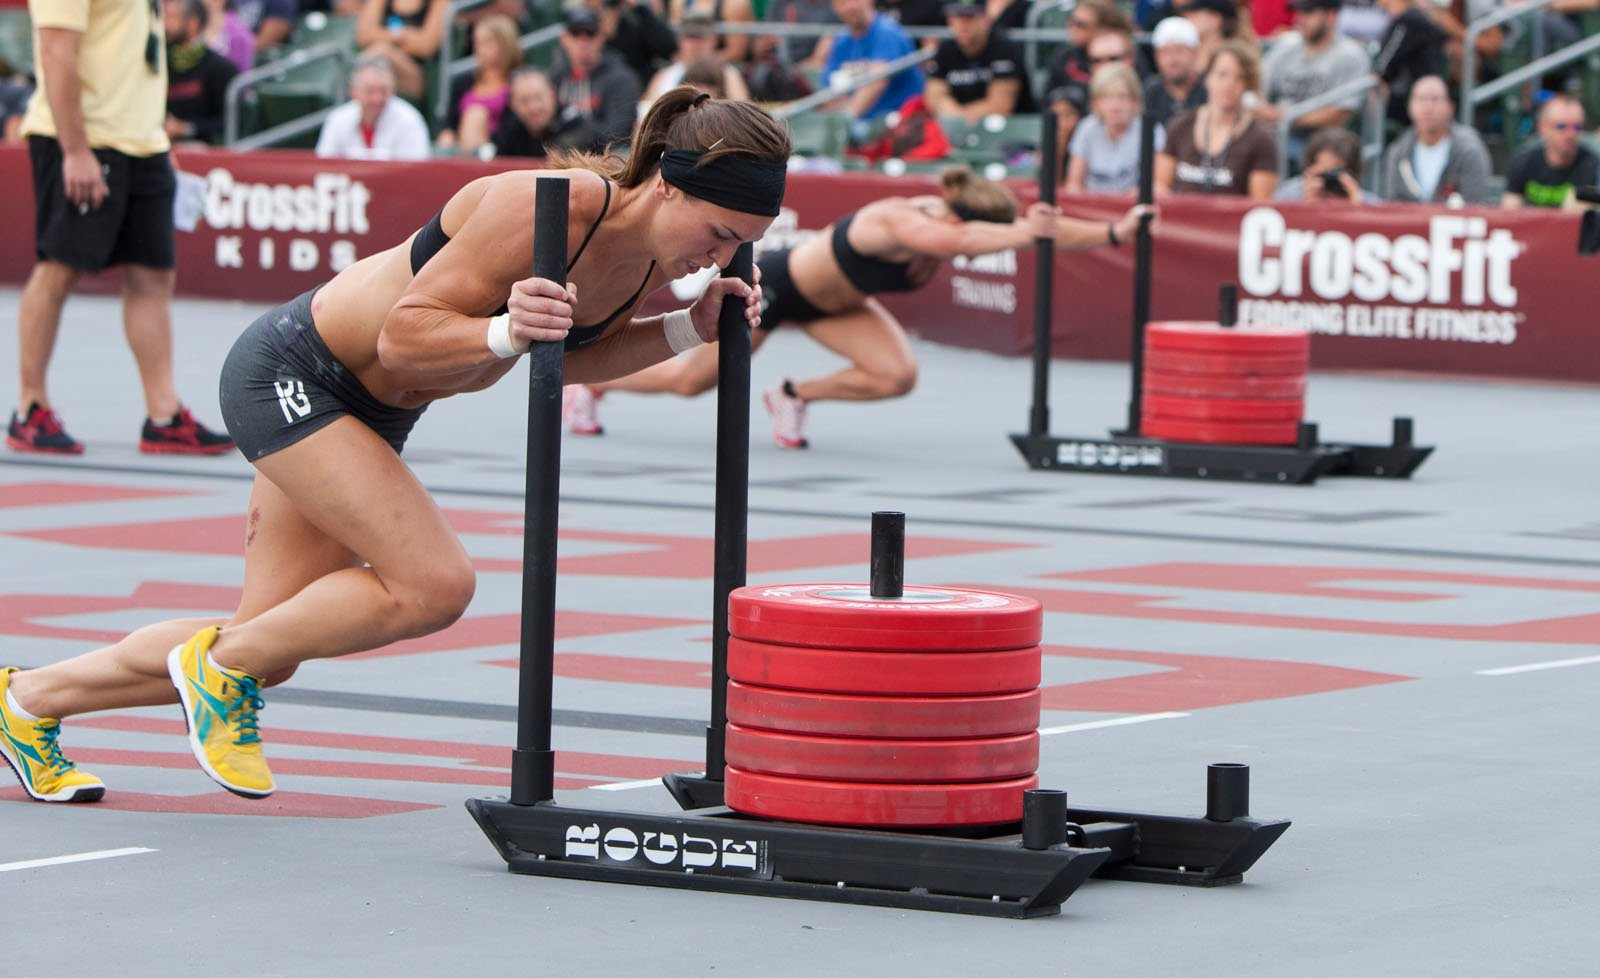 Crossfit sled push